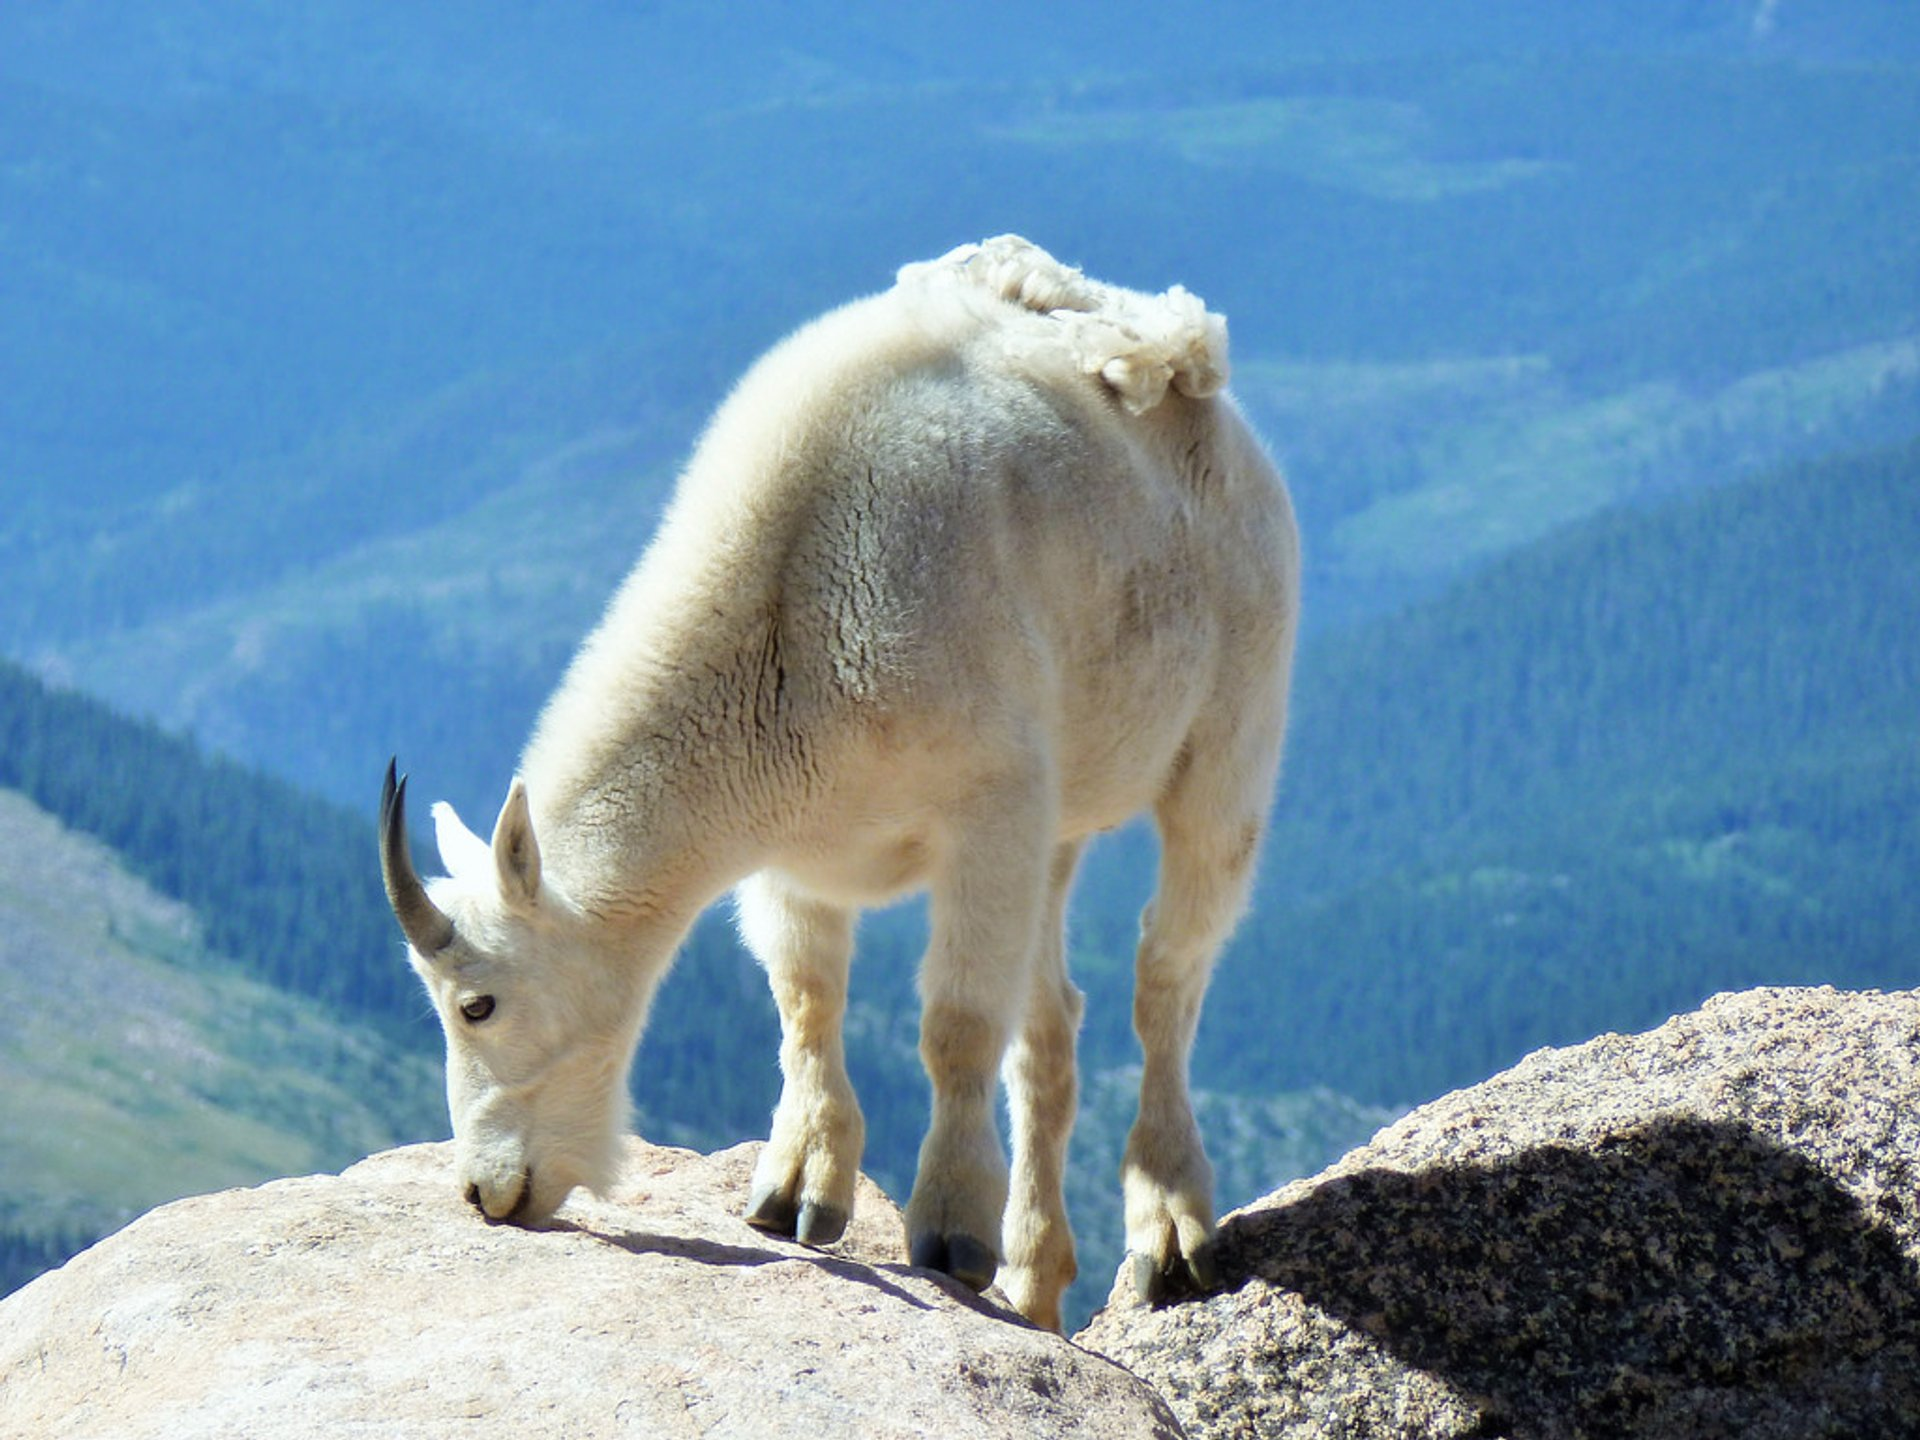 Rocky Mountain Goat 2020